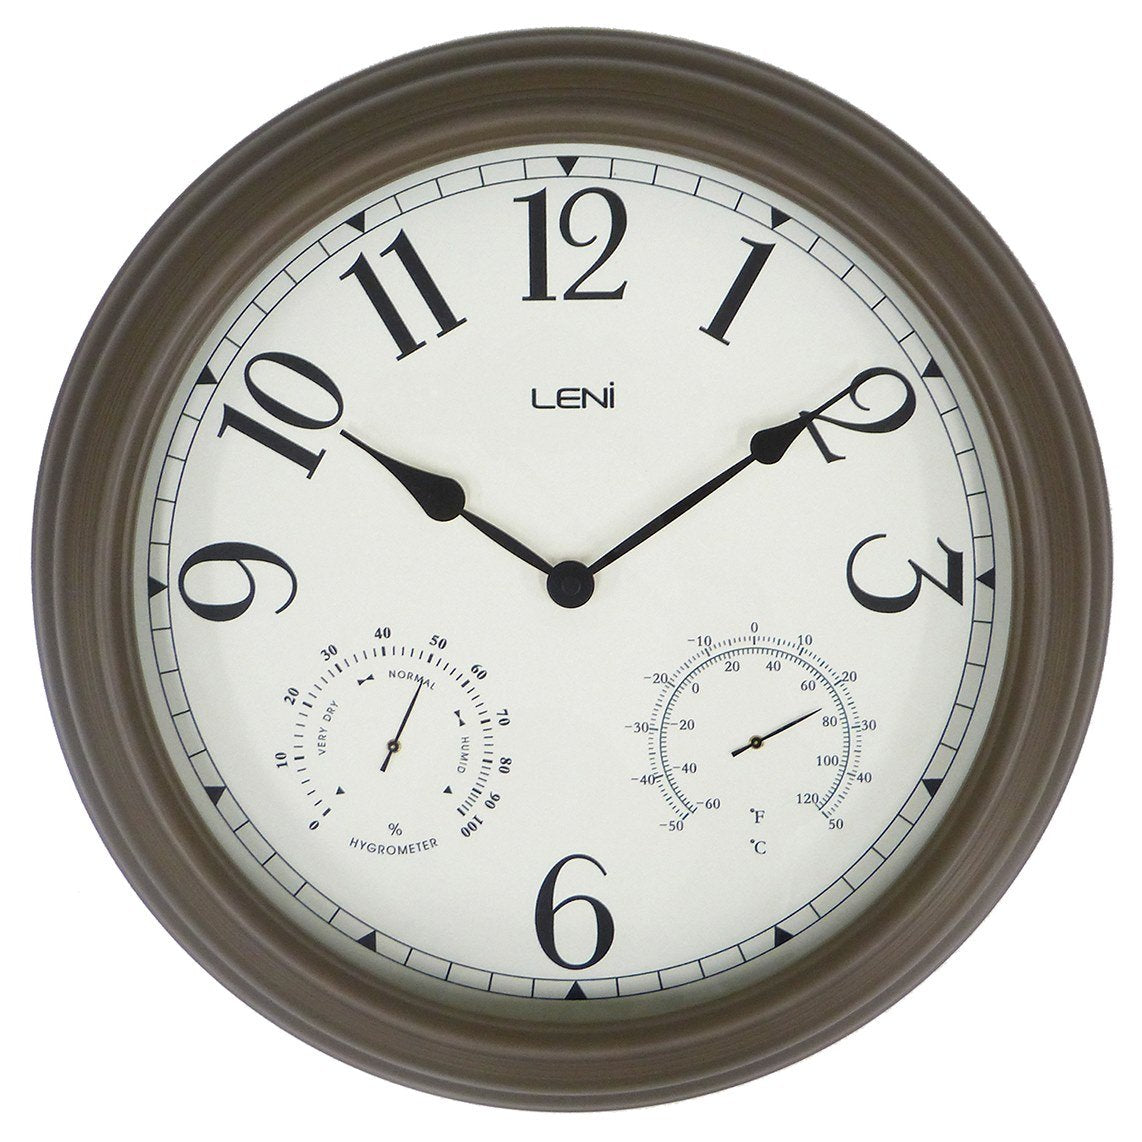 Leni Outdoor Multifunction Wall Clock, Brown, 41cm